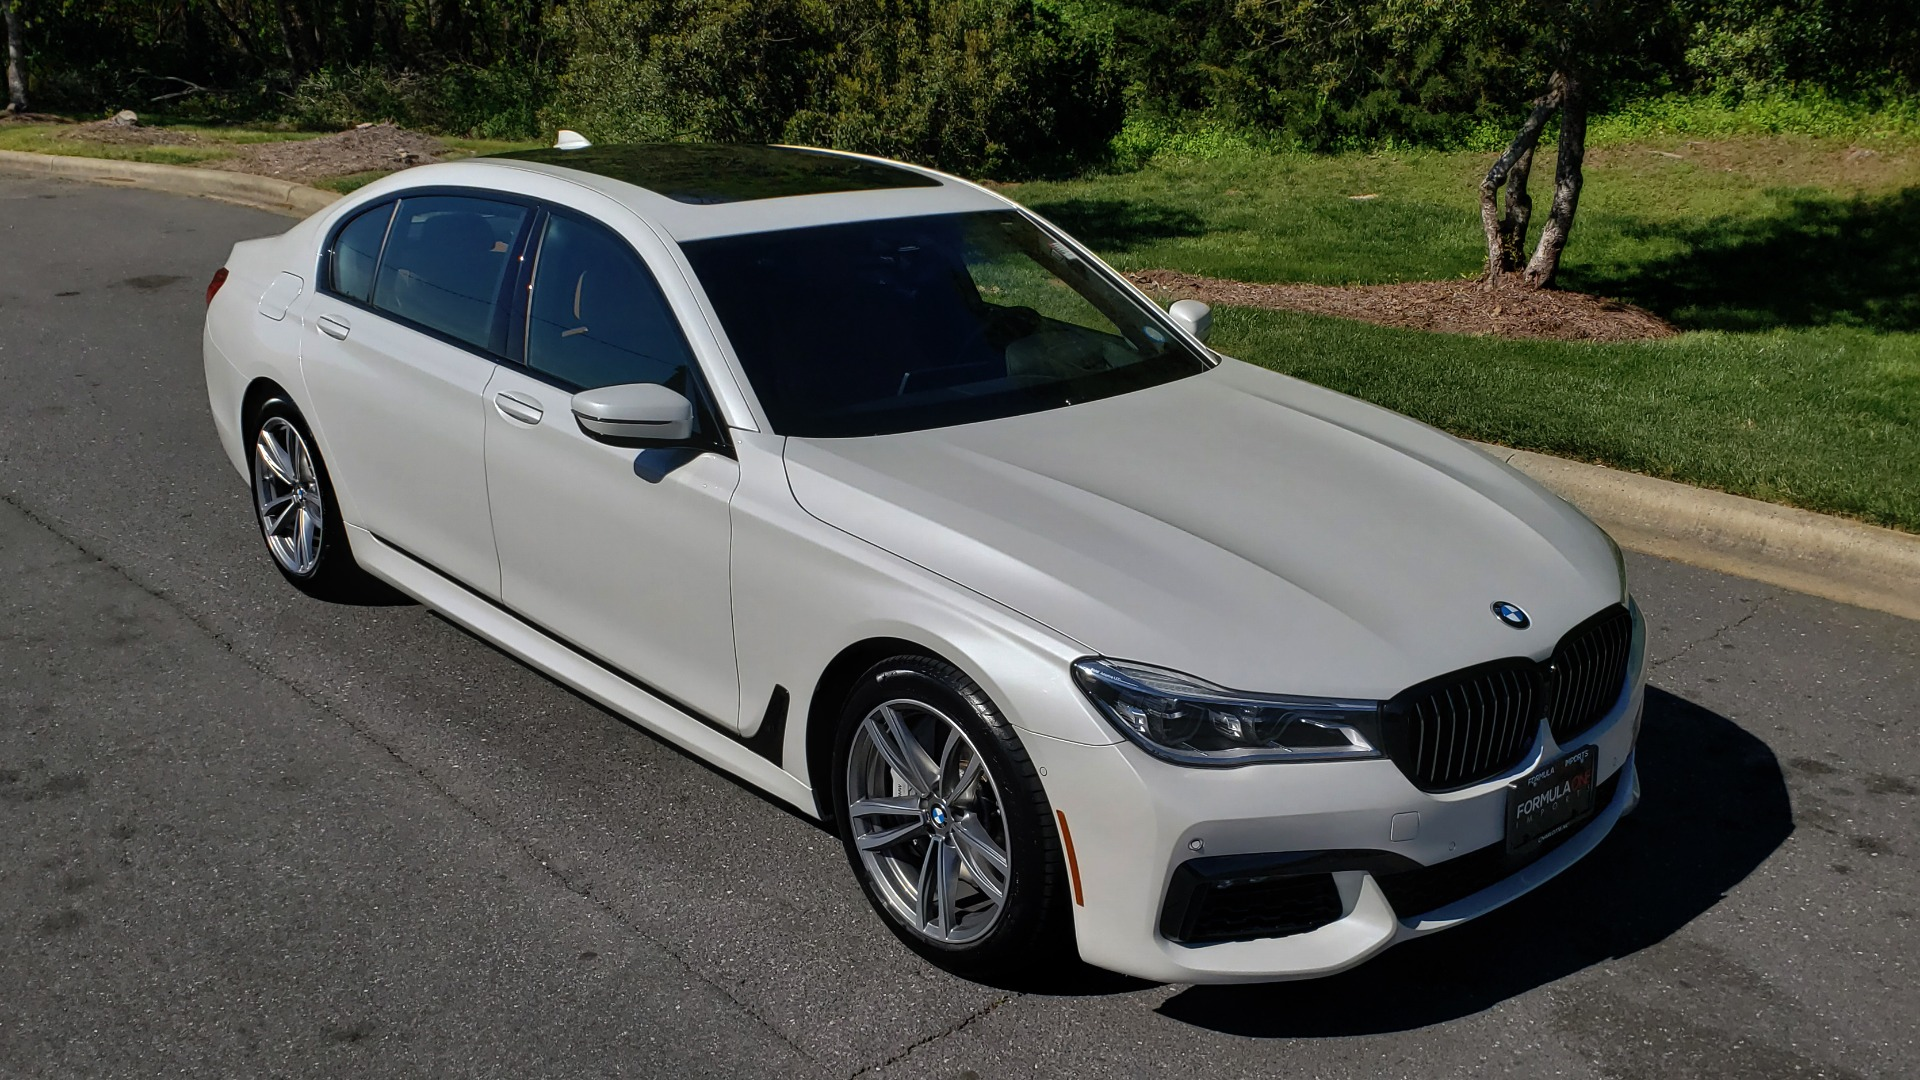 Used 2017 BMW 7 SERIES 750I XDRIVE / M-SPORT / EXEC PKG / DRVR ASST PLUS II / CLD WTHR for sale $48,495 at Formula Imports in Charlotte NC 28227 4